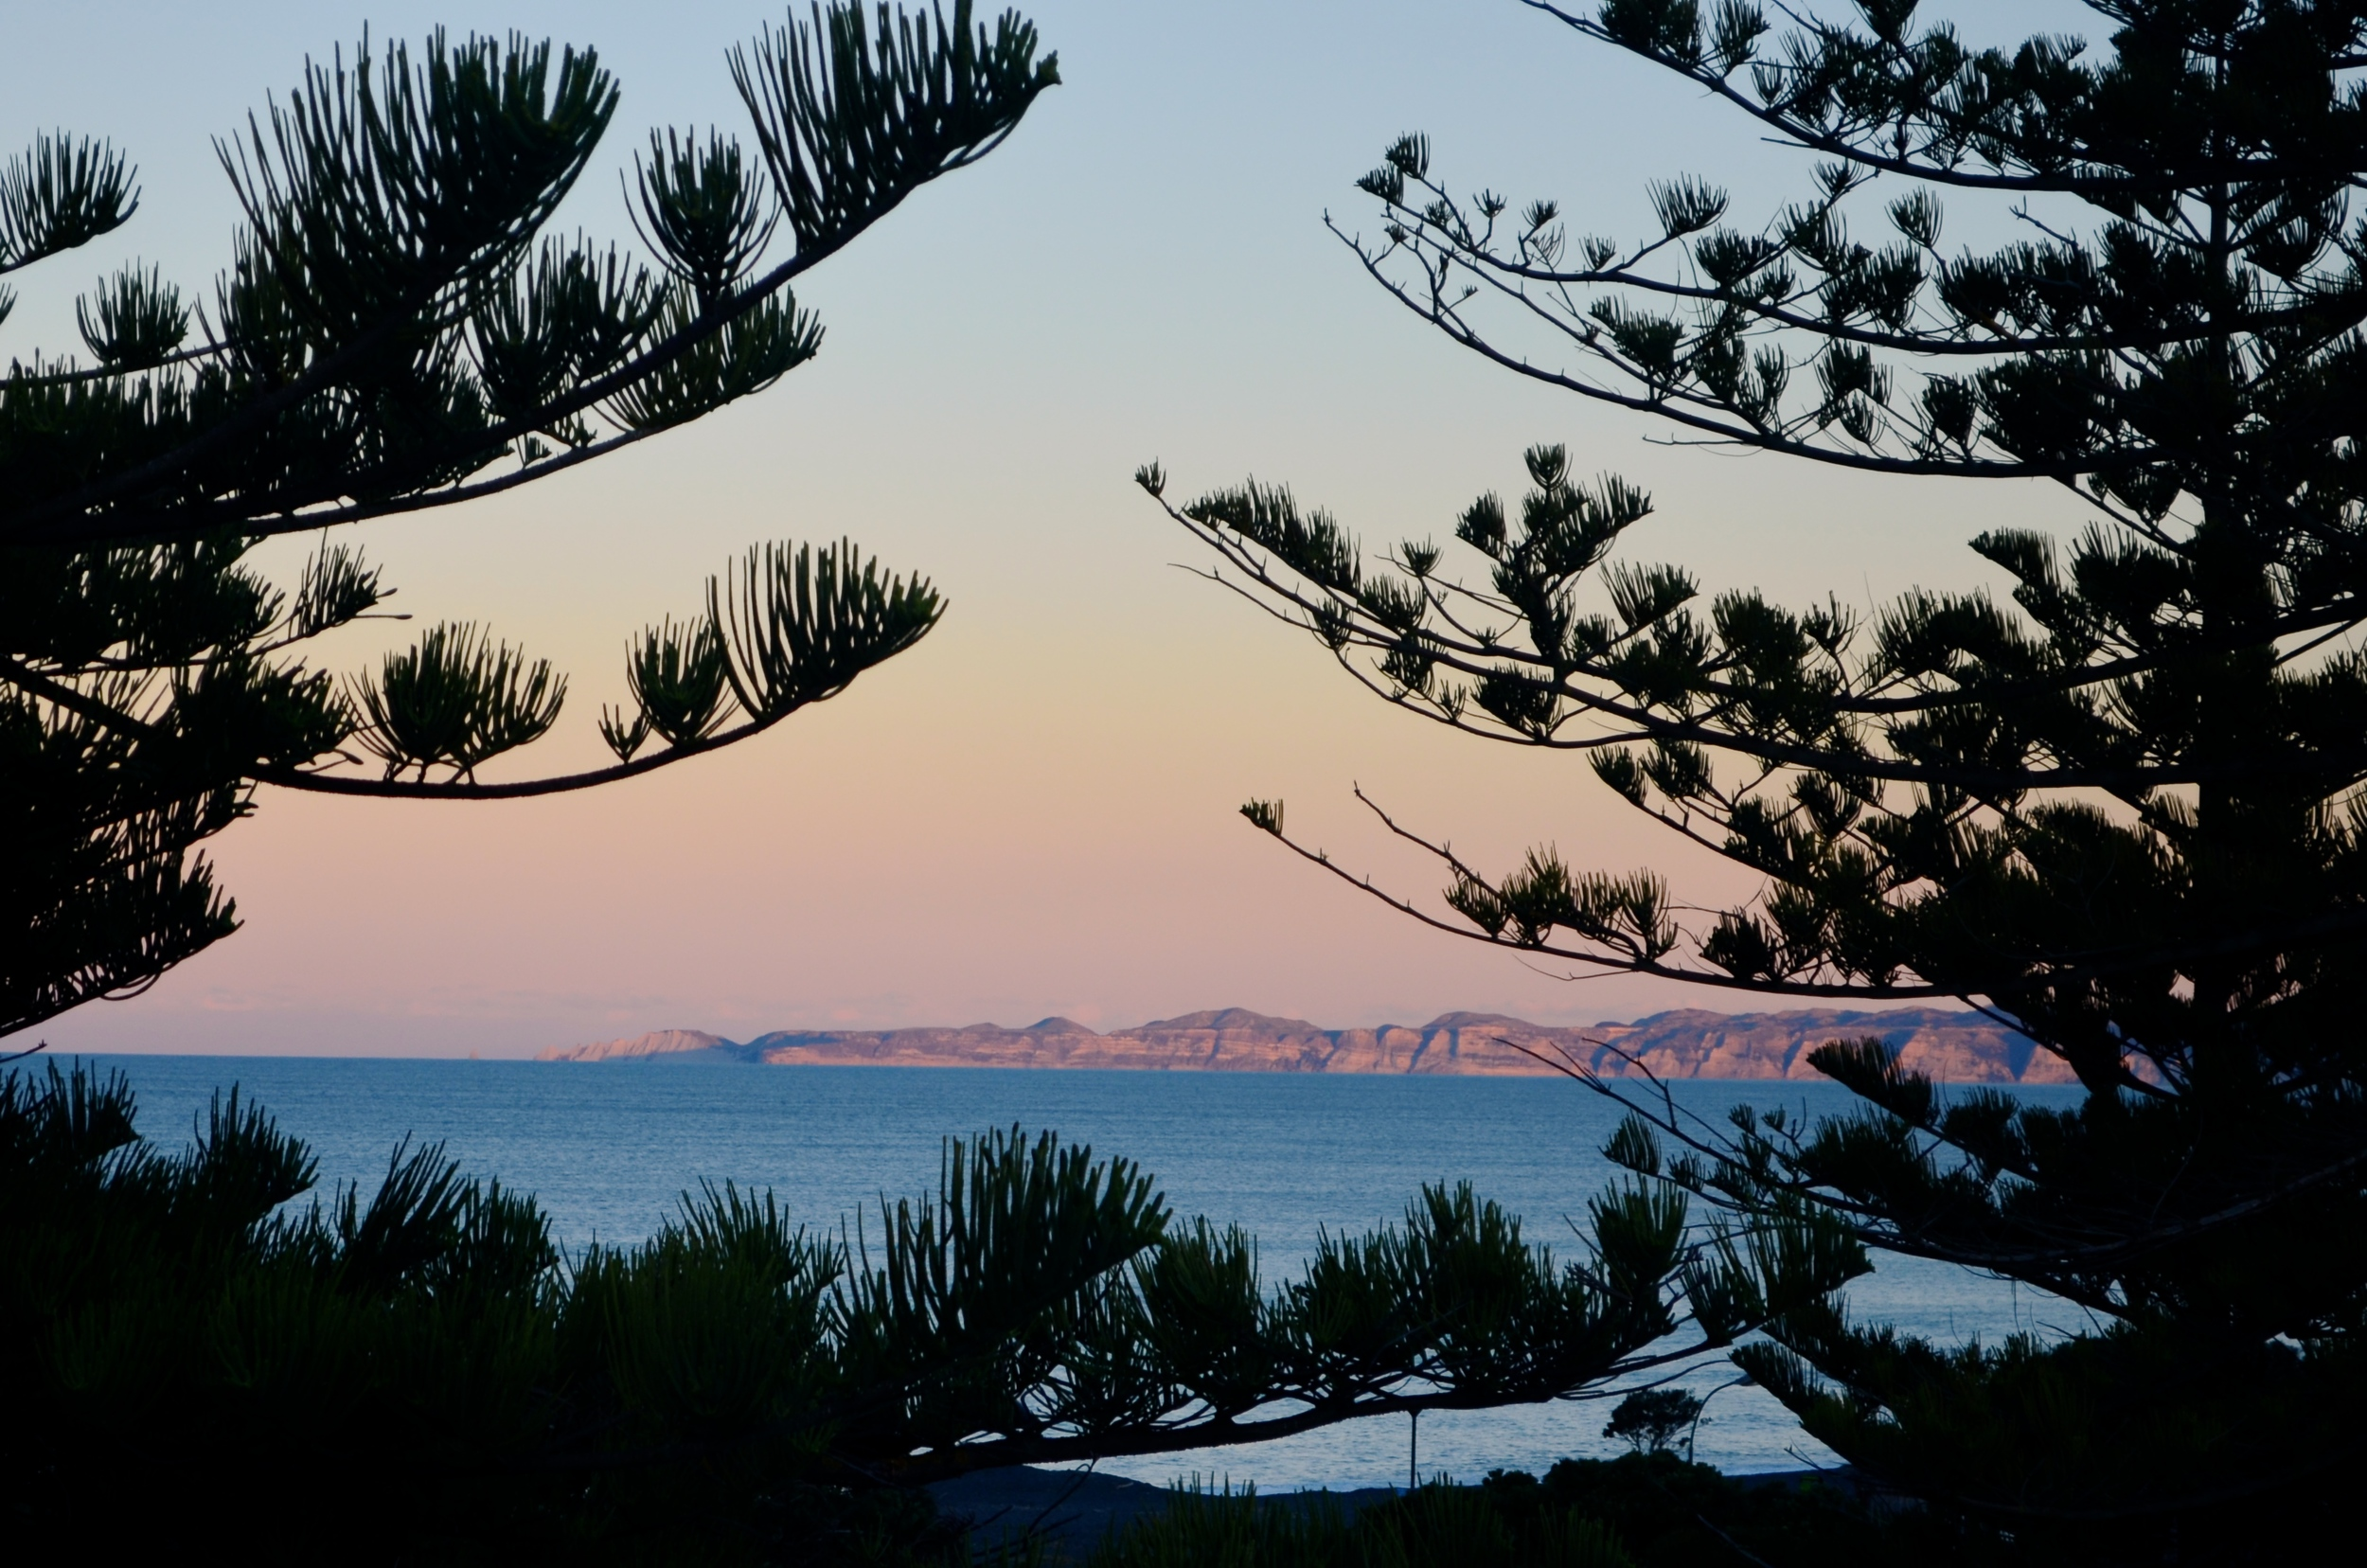 I must admit, the view of the Pacific Ocean and Cape Kidnappers in the distance pretty much sold me on the apartment.